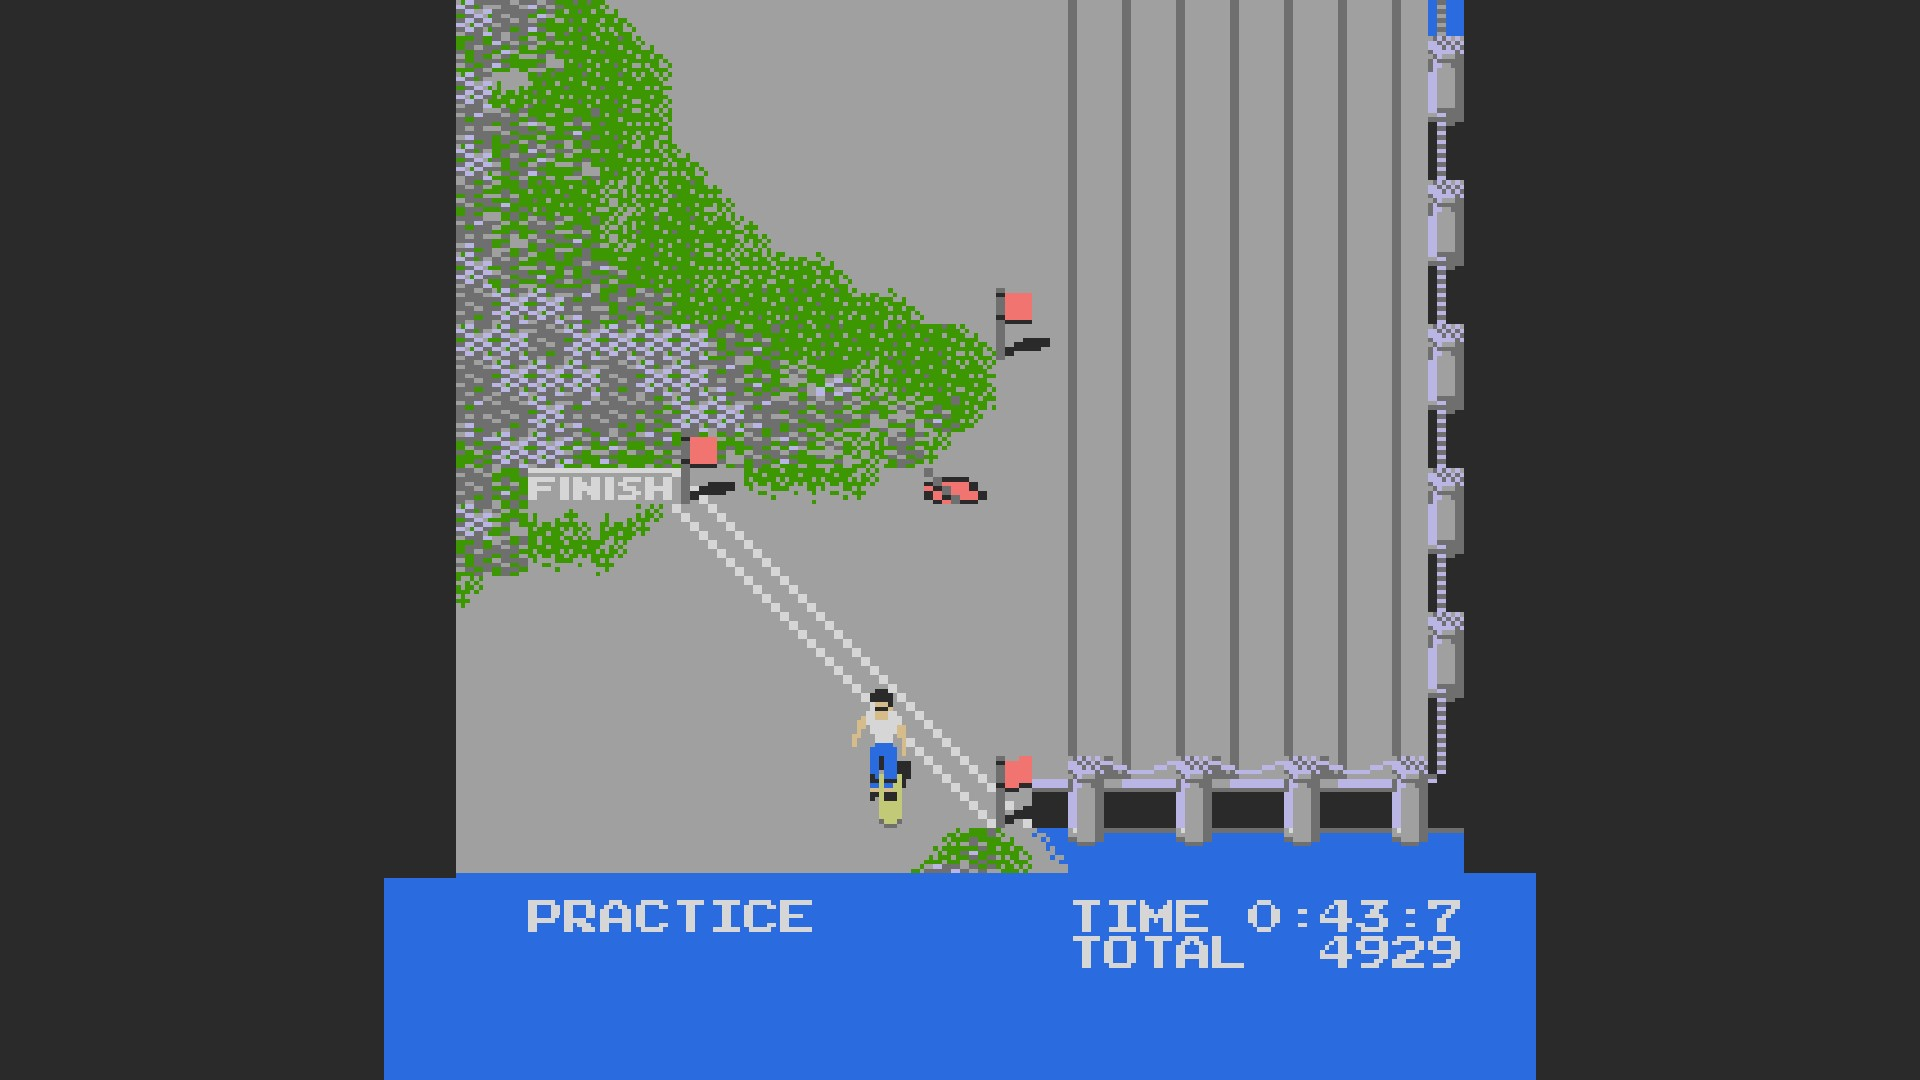 AkinNahtanoj: Skate Or Die: Downhill Race [Time] (NES/Famicom Emulated) 0:00:43.7 points on 2020-10-15 05:45:32